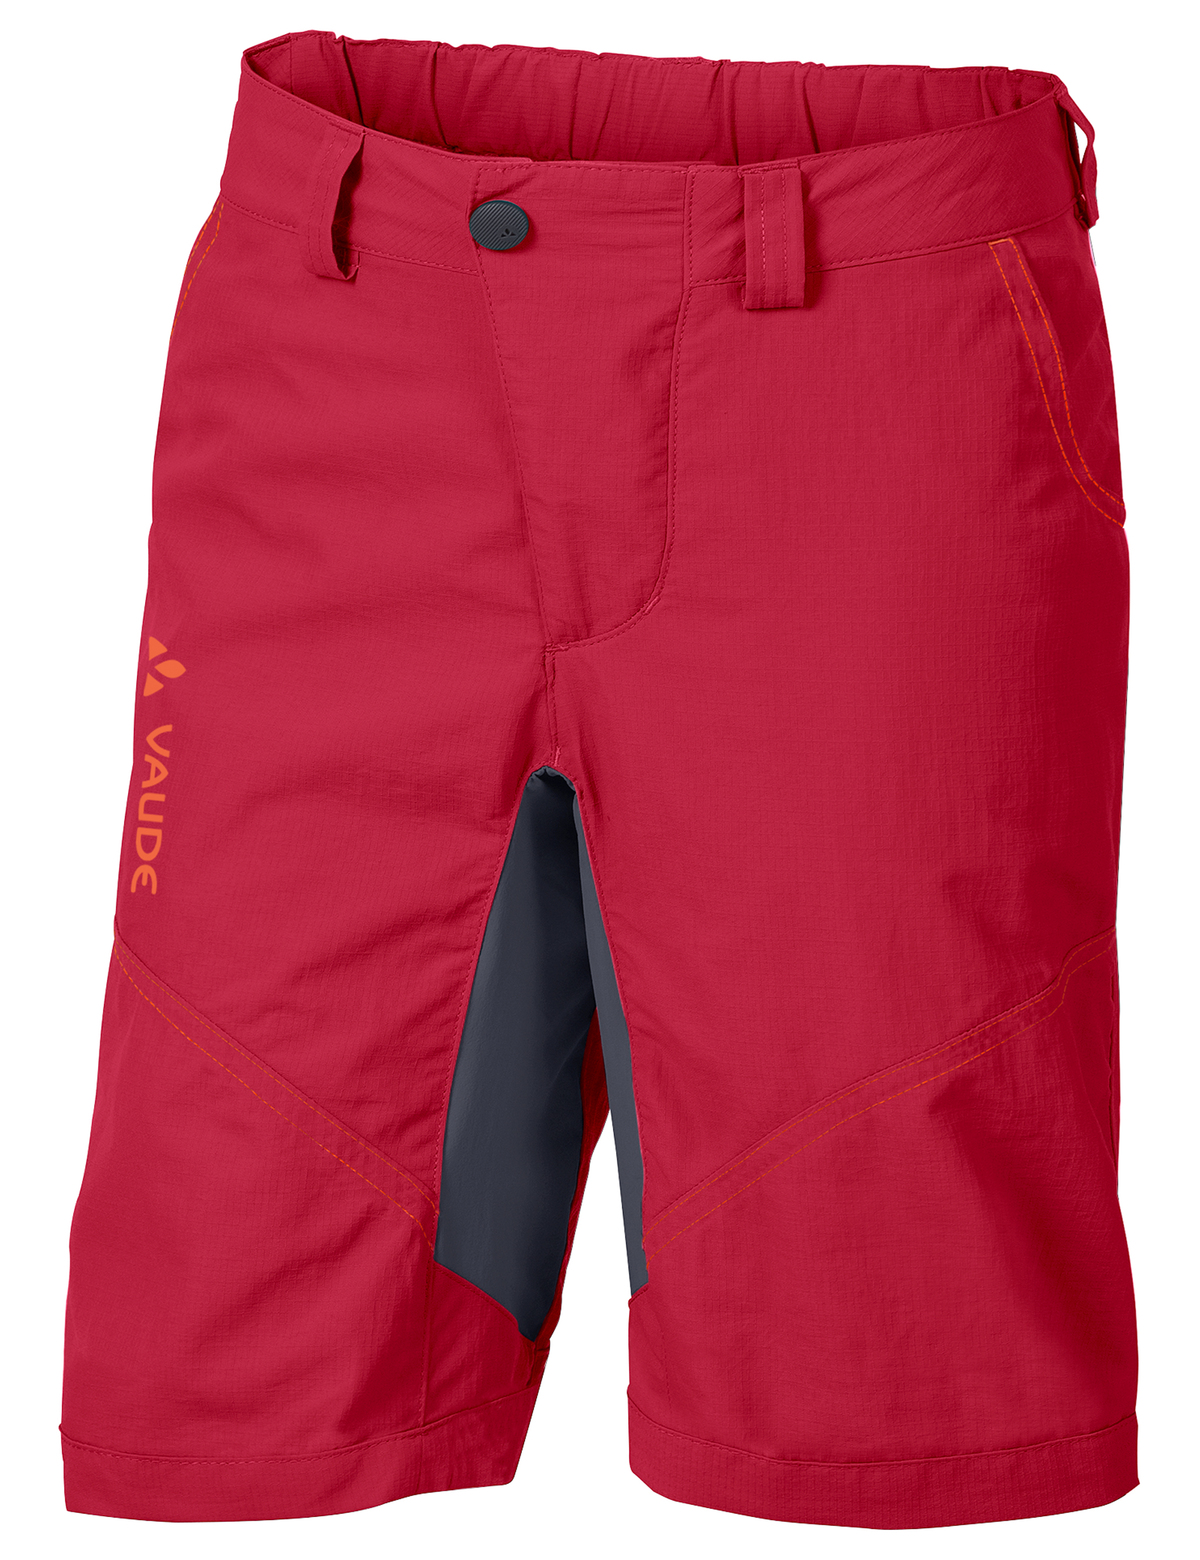 VAUDE Kids Grody Shorts V indian red Größe 158/164 - schneider-sports